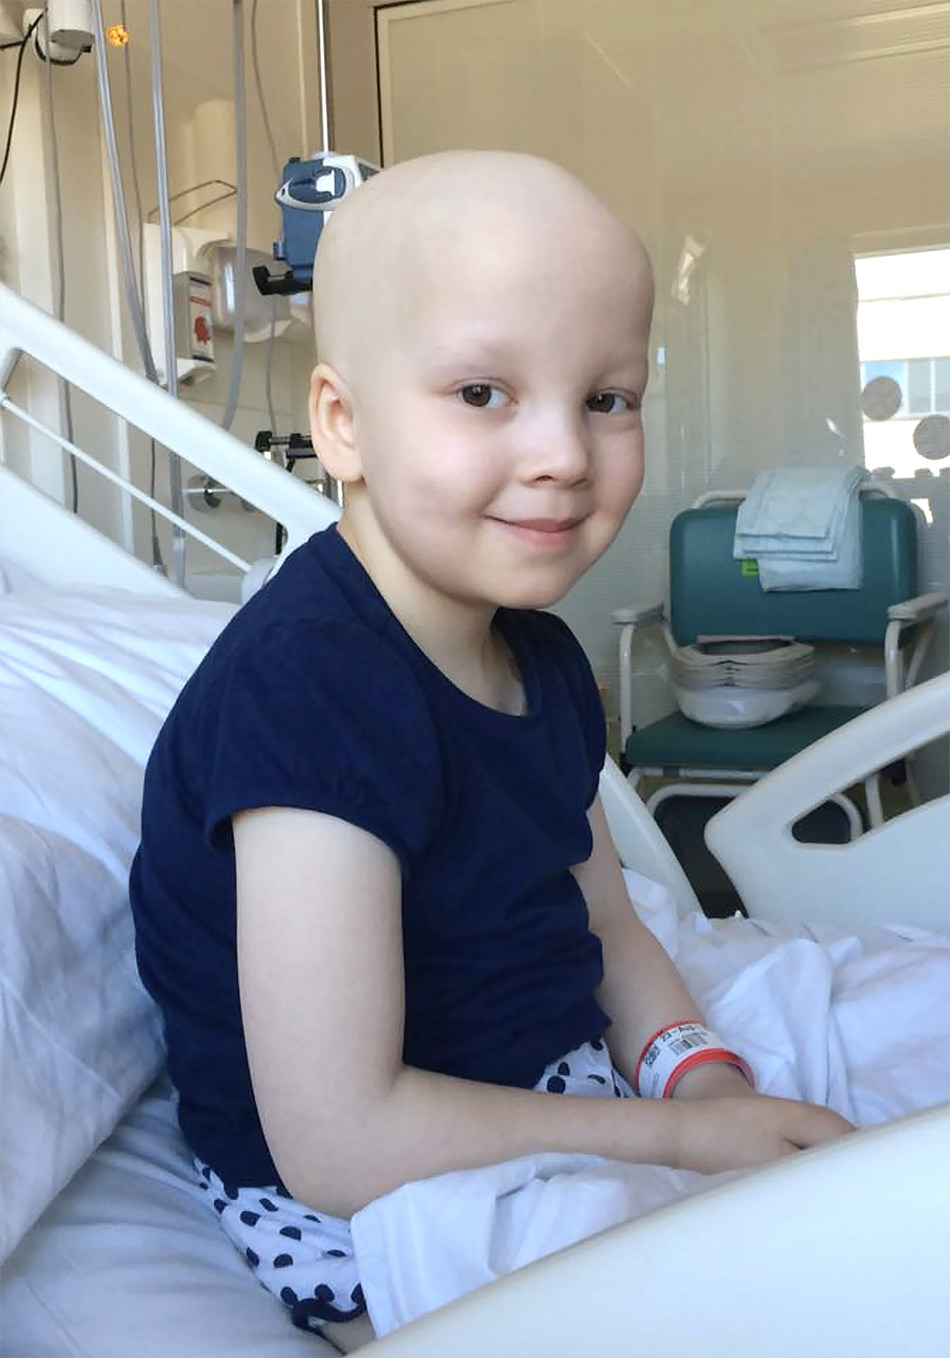 Erin Cross, 7, is one patient who experienced the power of T-cell immunotherapy after traveling to Seattle from her hometown of Chester, England, to receive the experimental therapy. Now, a year later, Erin is still in remission.